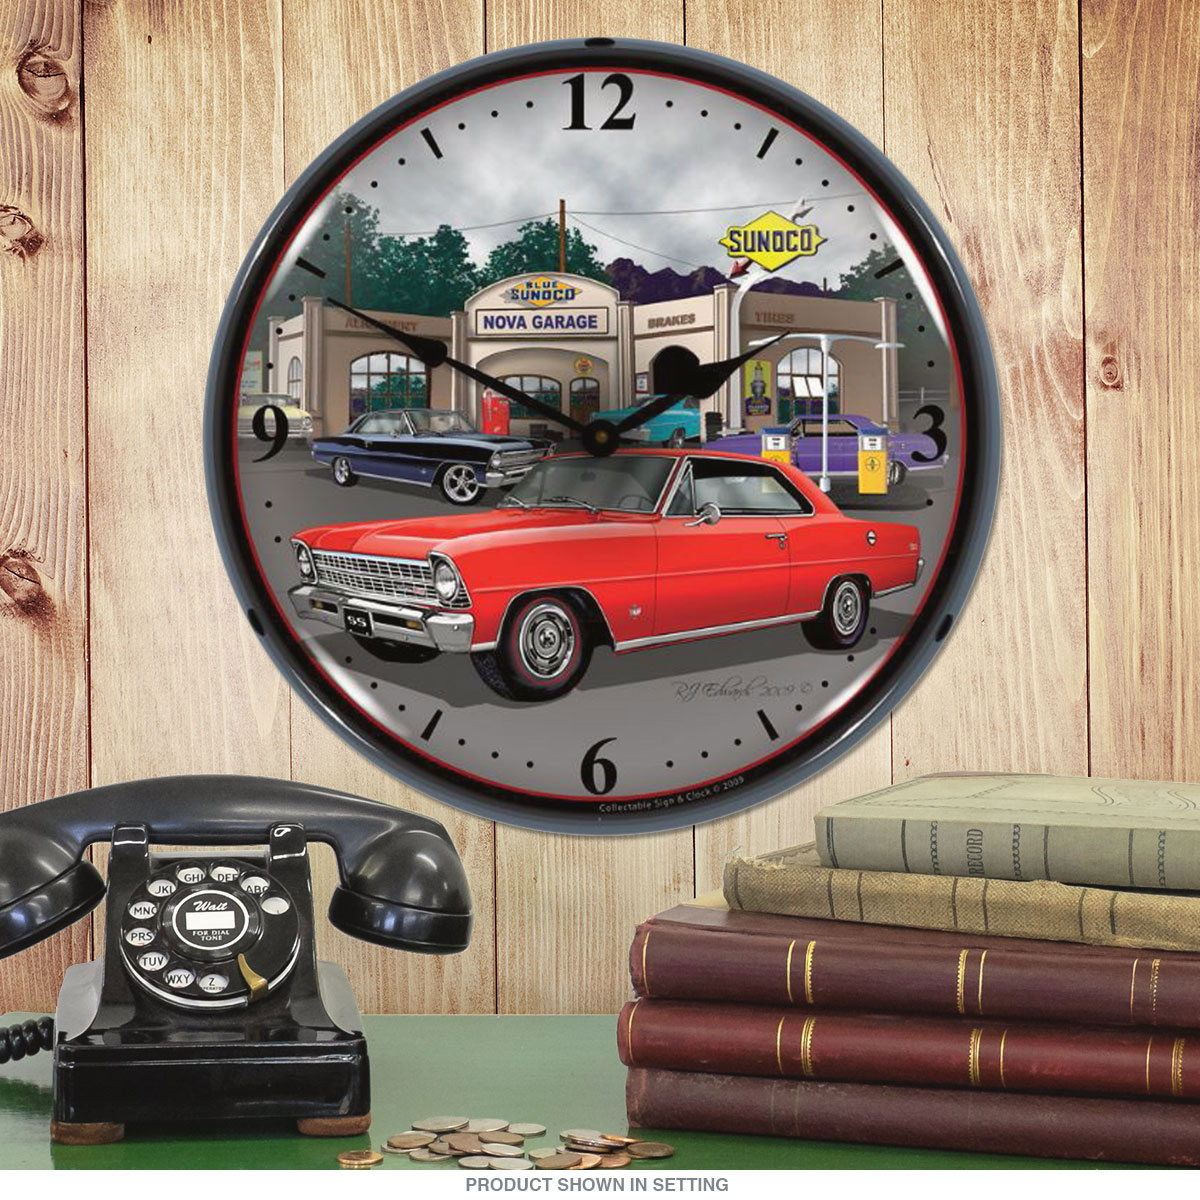 Chevrolet Nova Sunoco Station Light Up Garage Clock